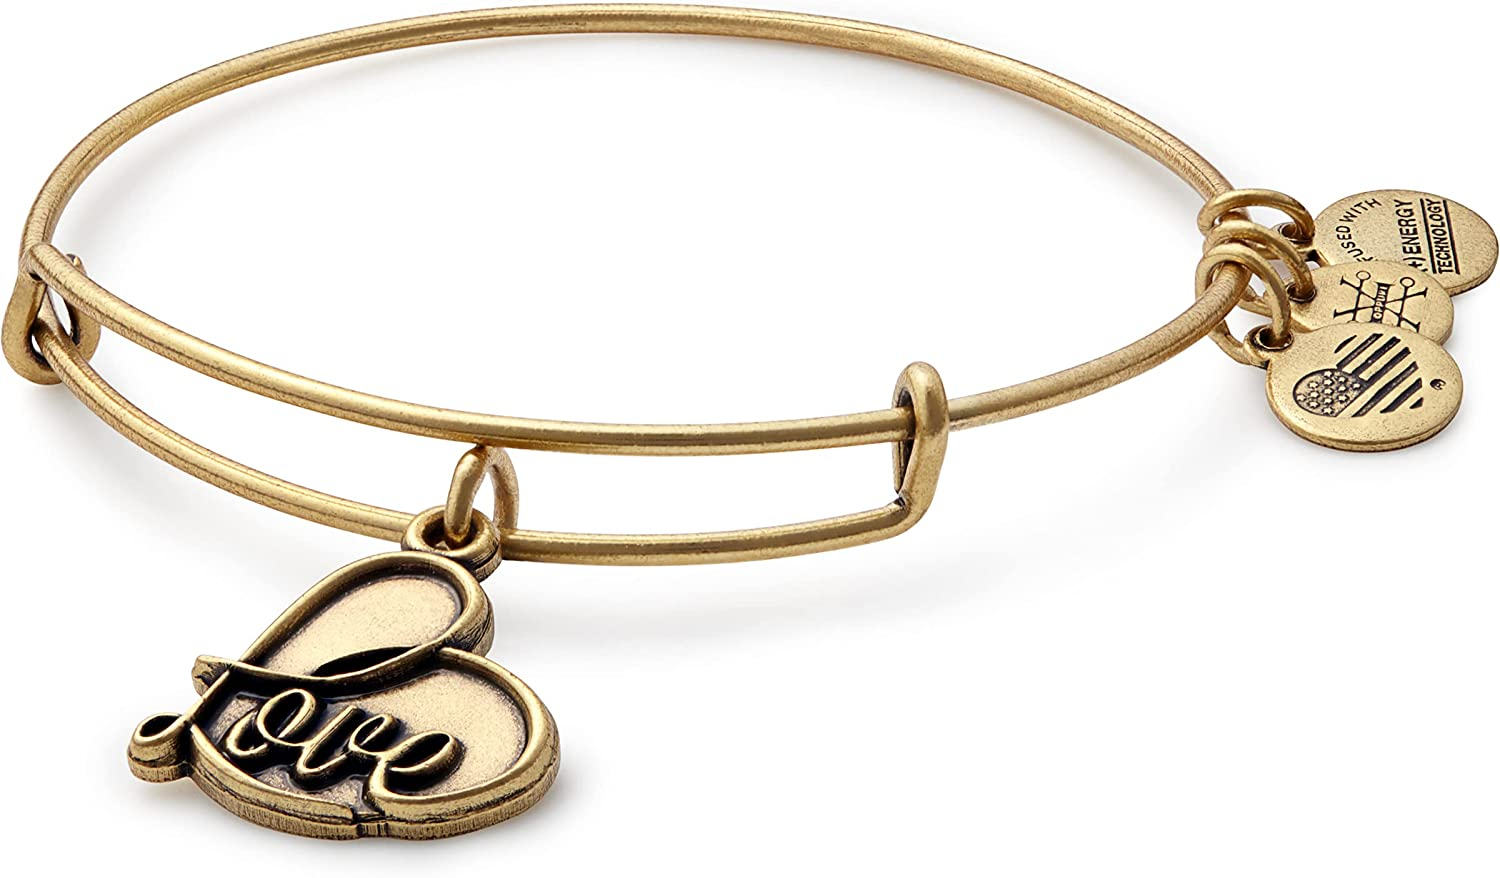 Alex and Ani Path of Symbols Expandable Bangle for Women, Love Charm, Rafaelian Finish, 2 to 3.5 in